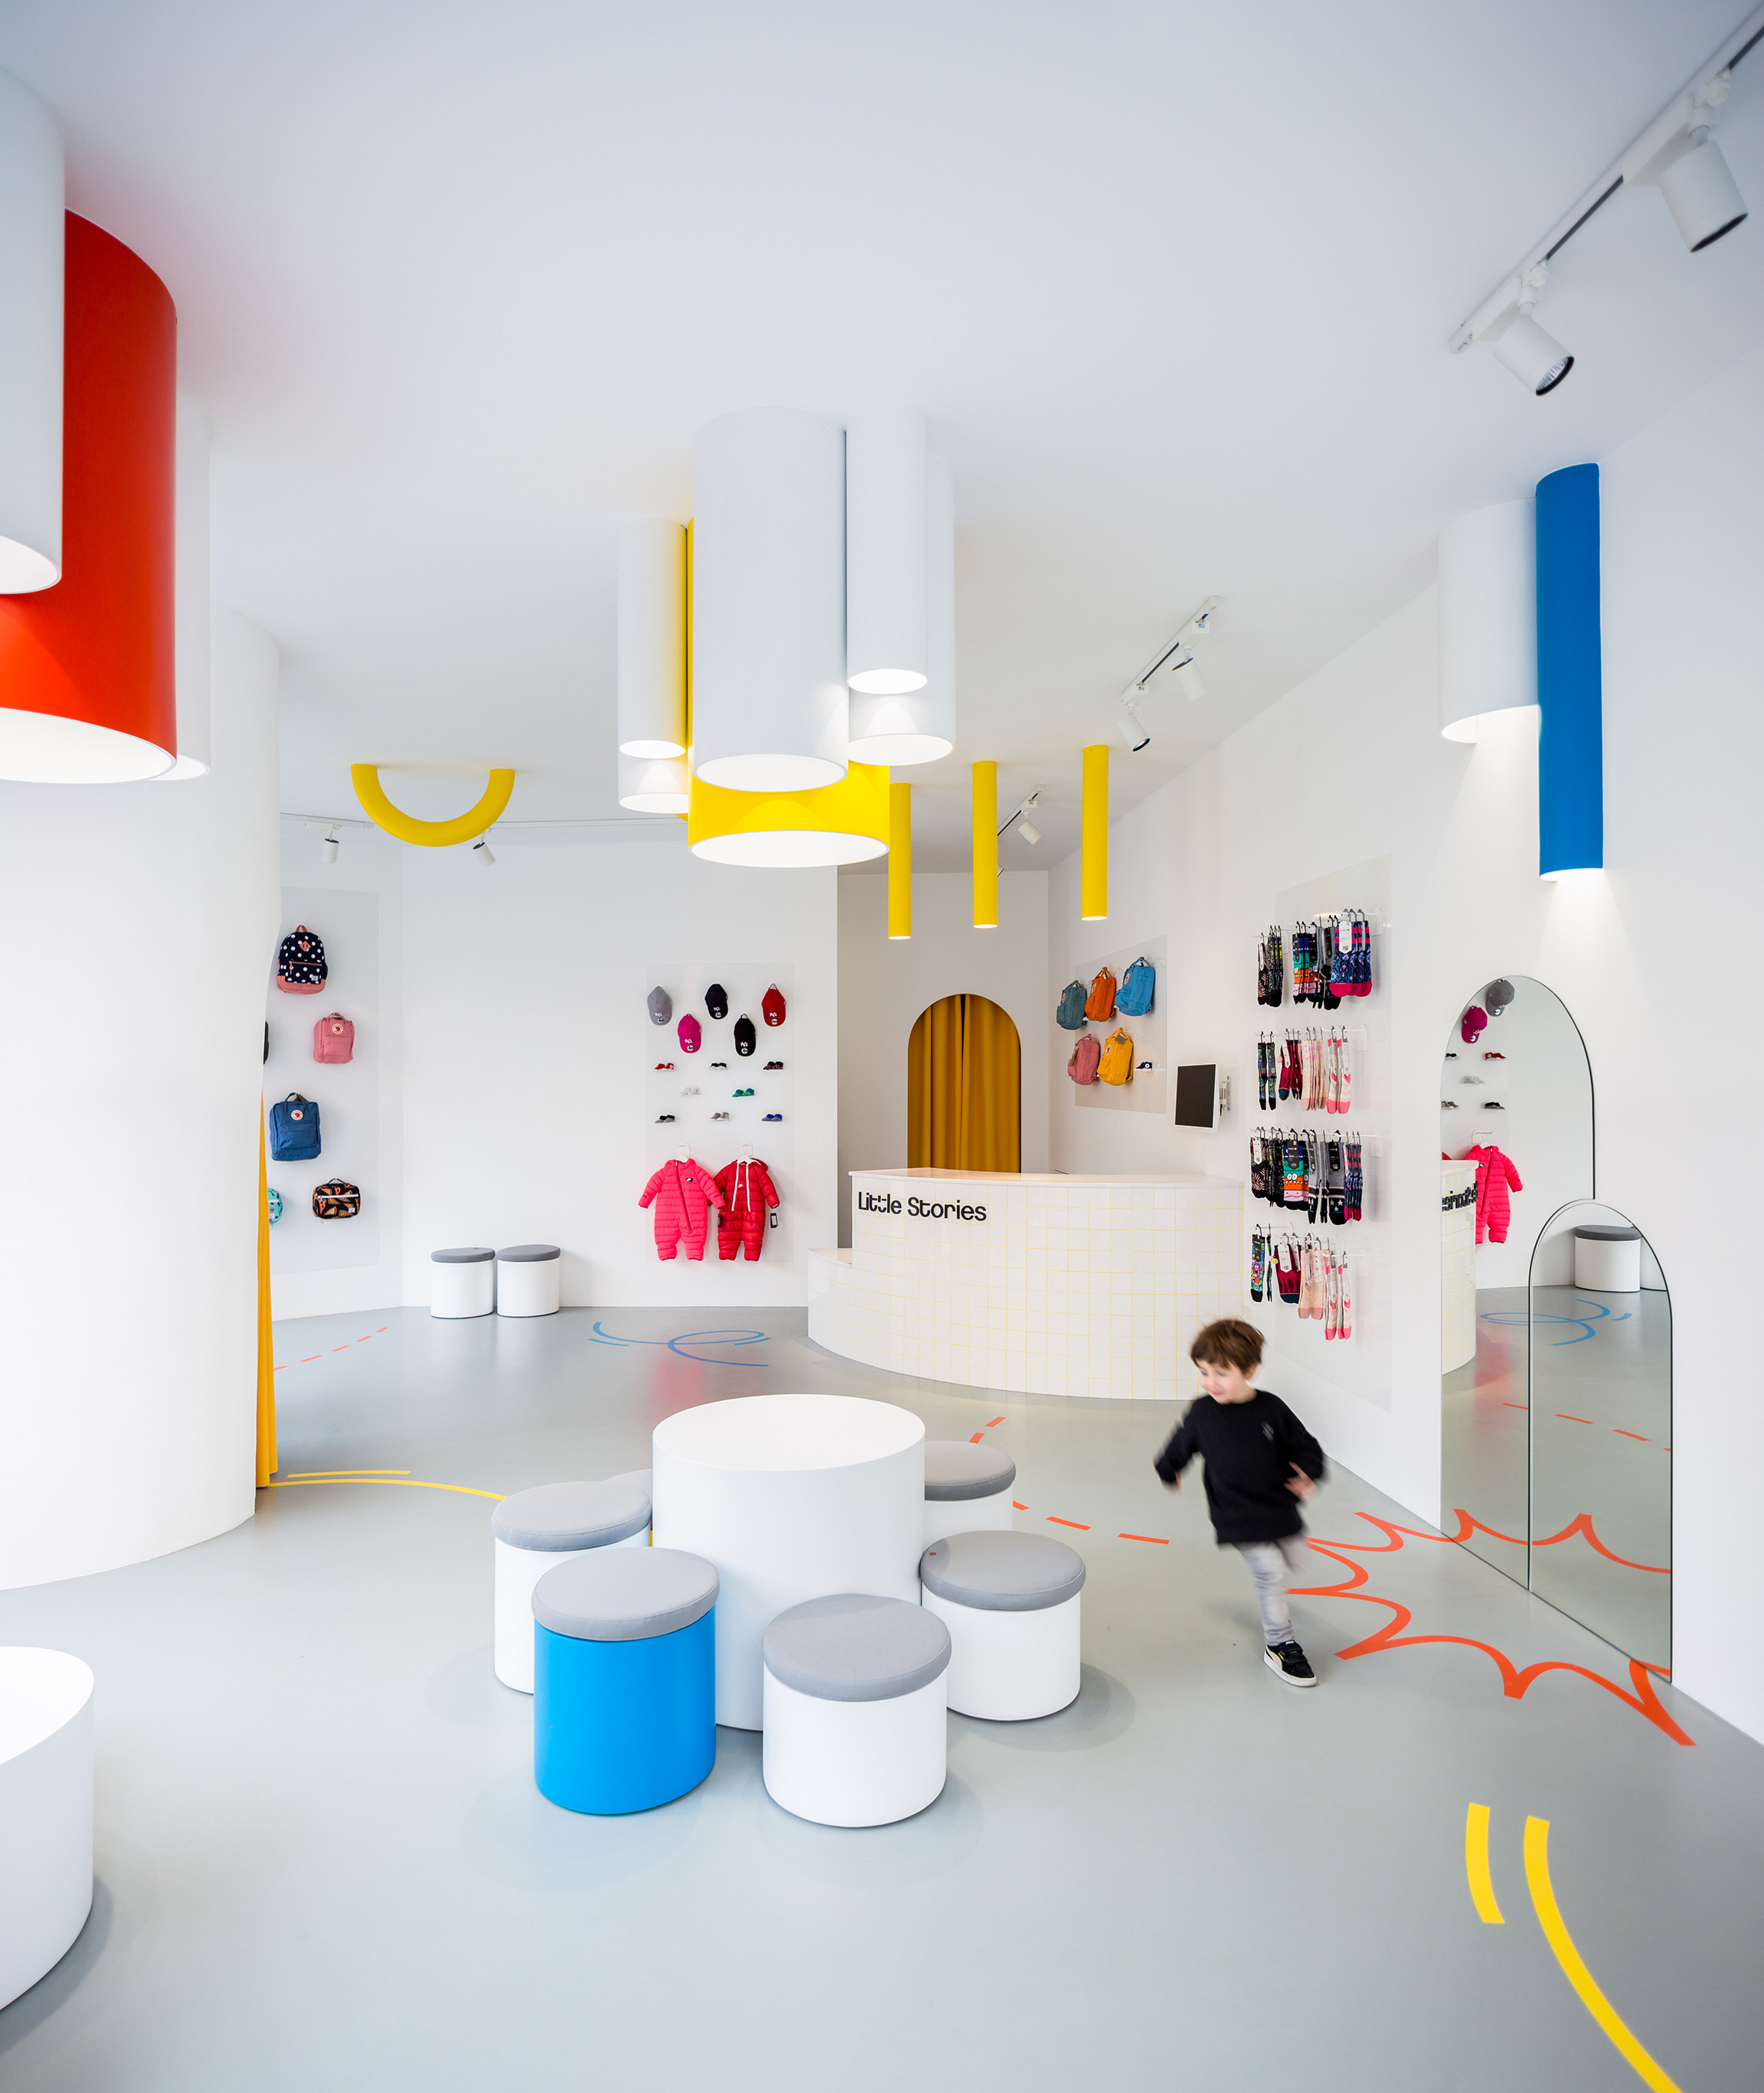 clap-studio-interior-design-little-stories-retail-interior-design